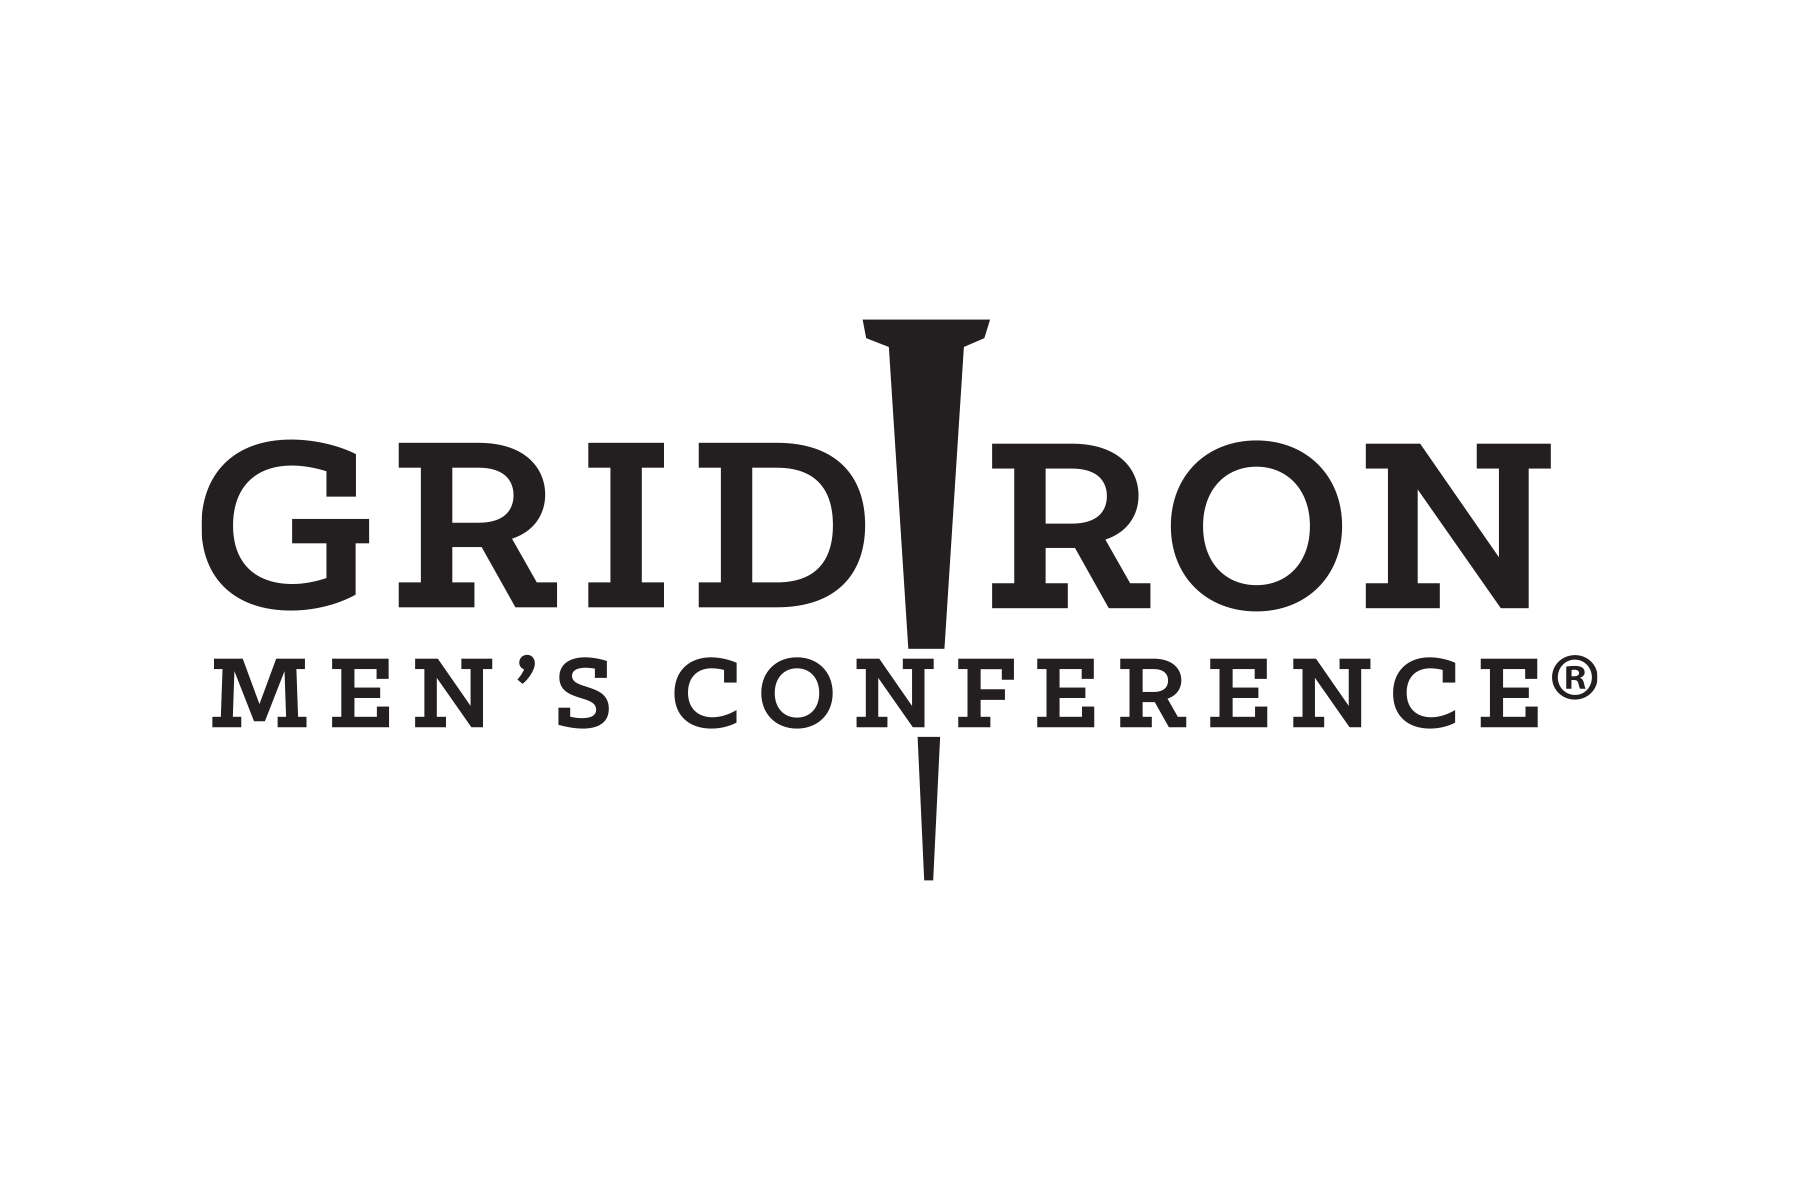 Gridiron Men's Conference 2018